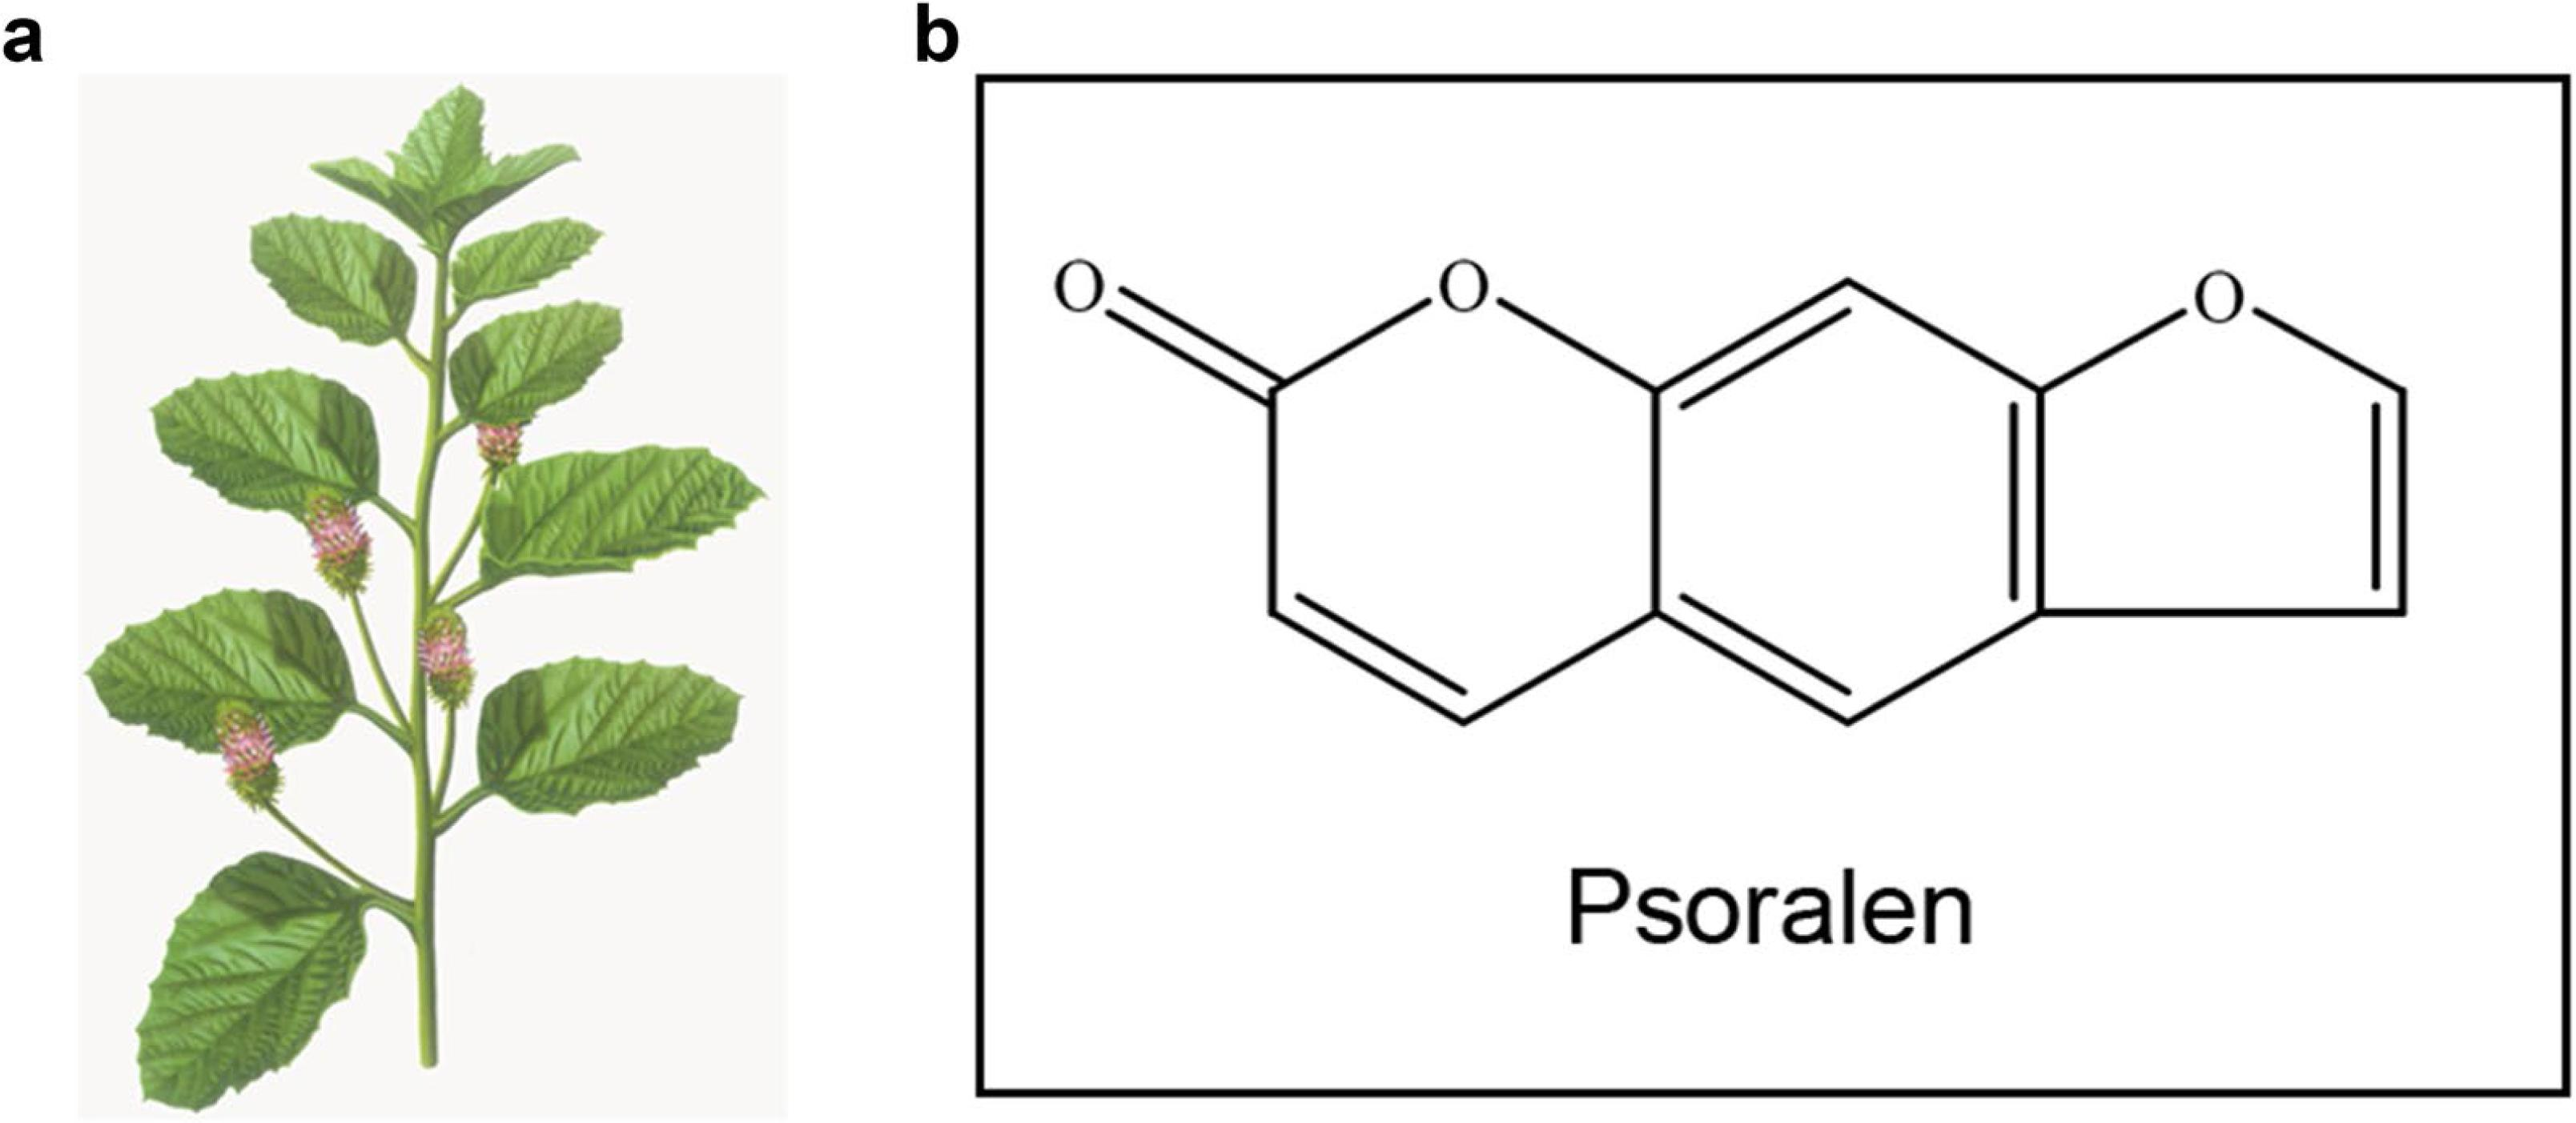 Psoralen inhibits malignant proliferation and induces